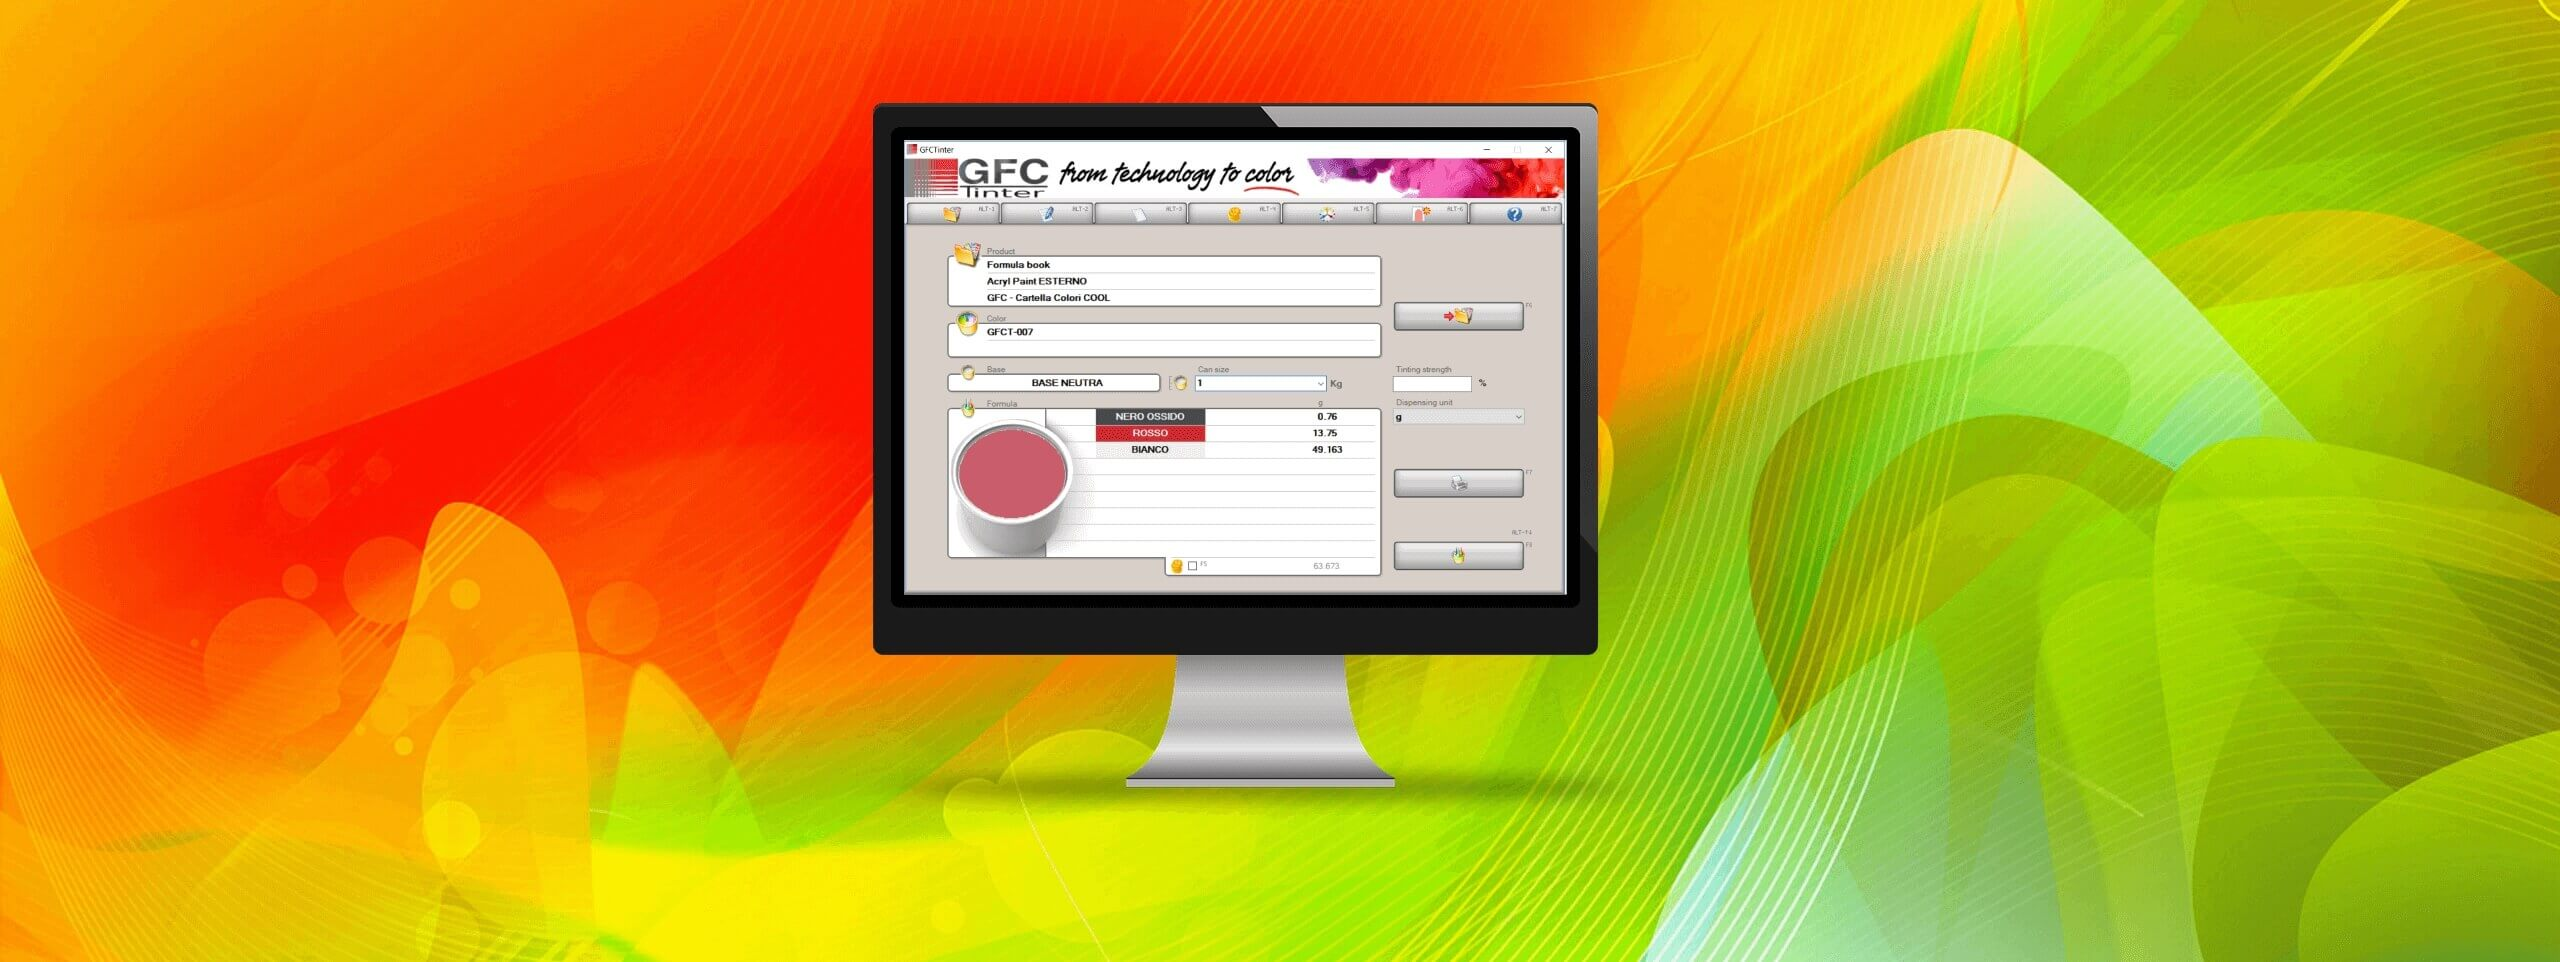 GFCTinter: Software formulativo colore